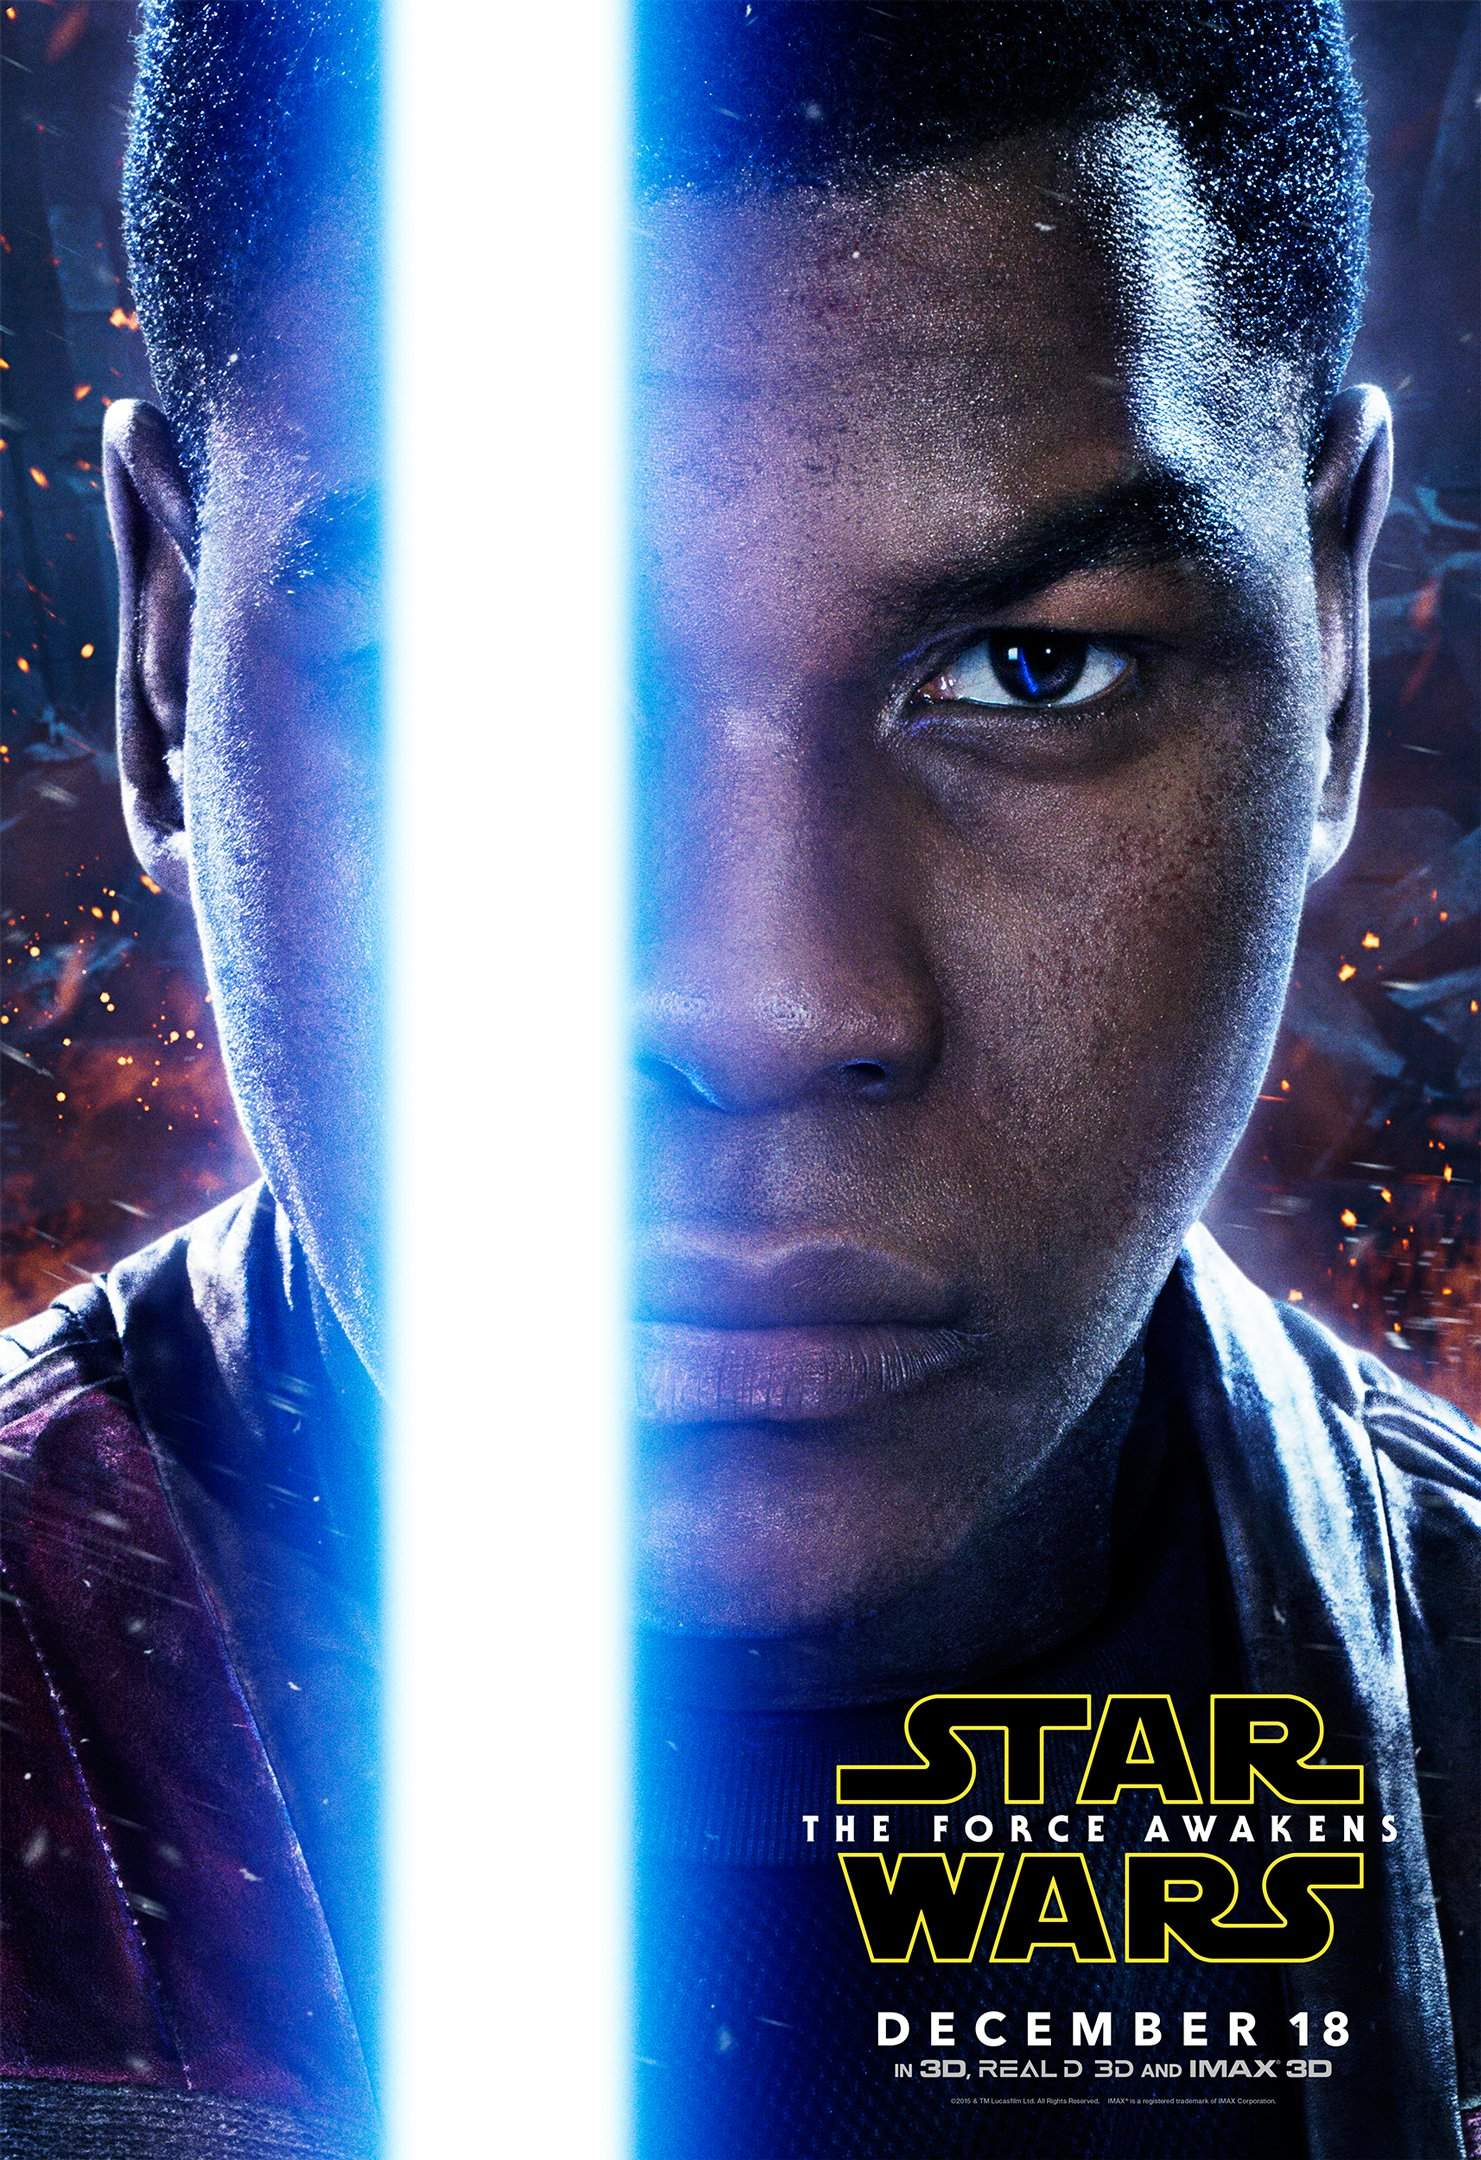 official character posters from star wars episode vii the force awakens vamers. Black Bedroom Furniture Sets. Home Design Ideas